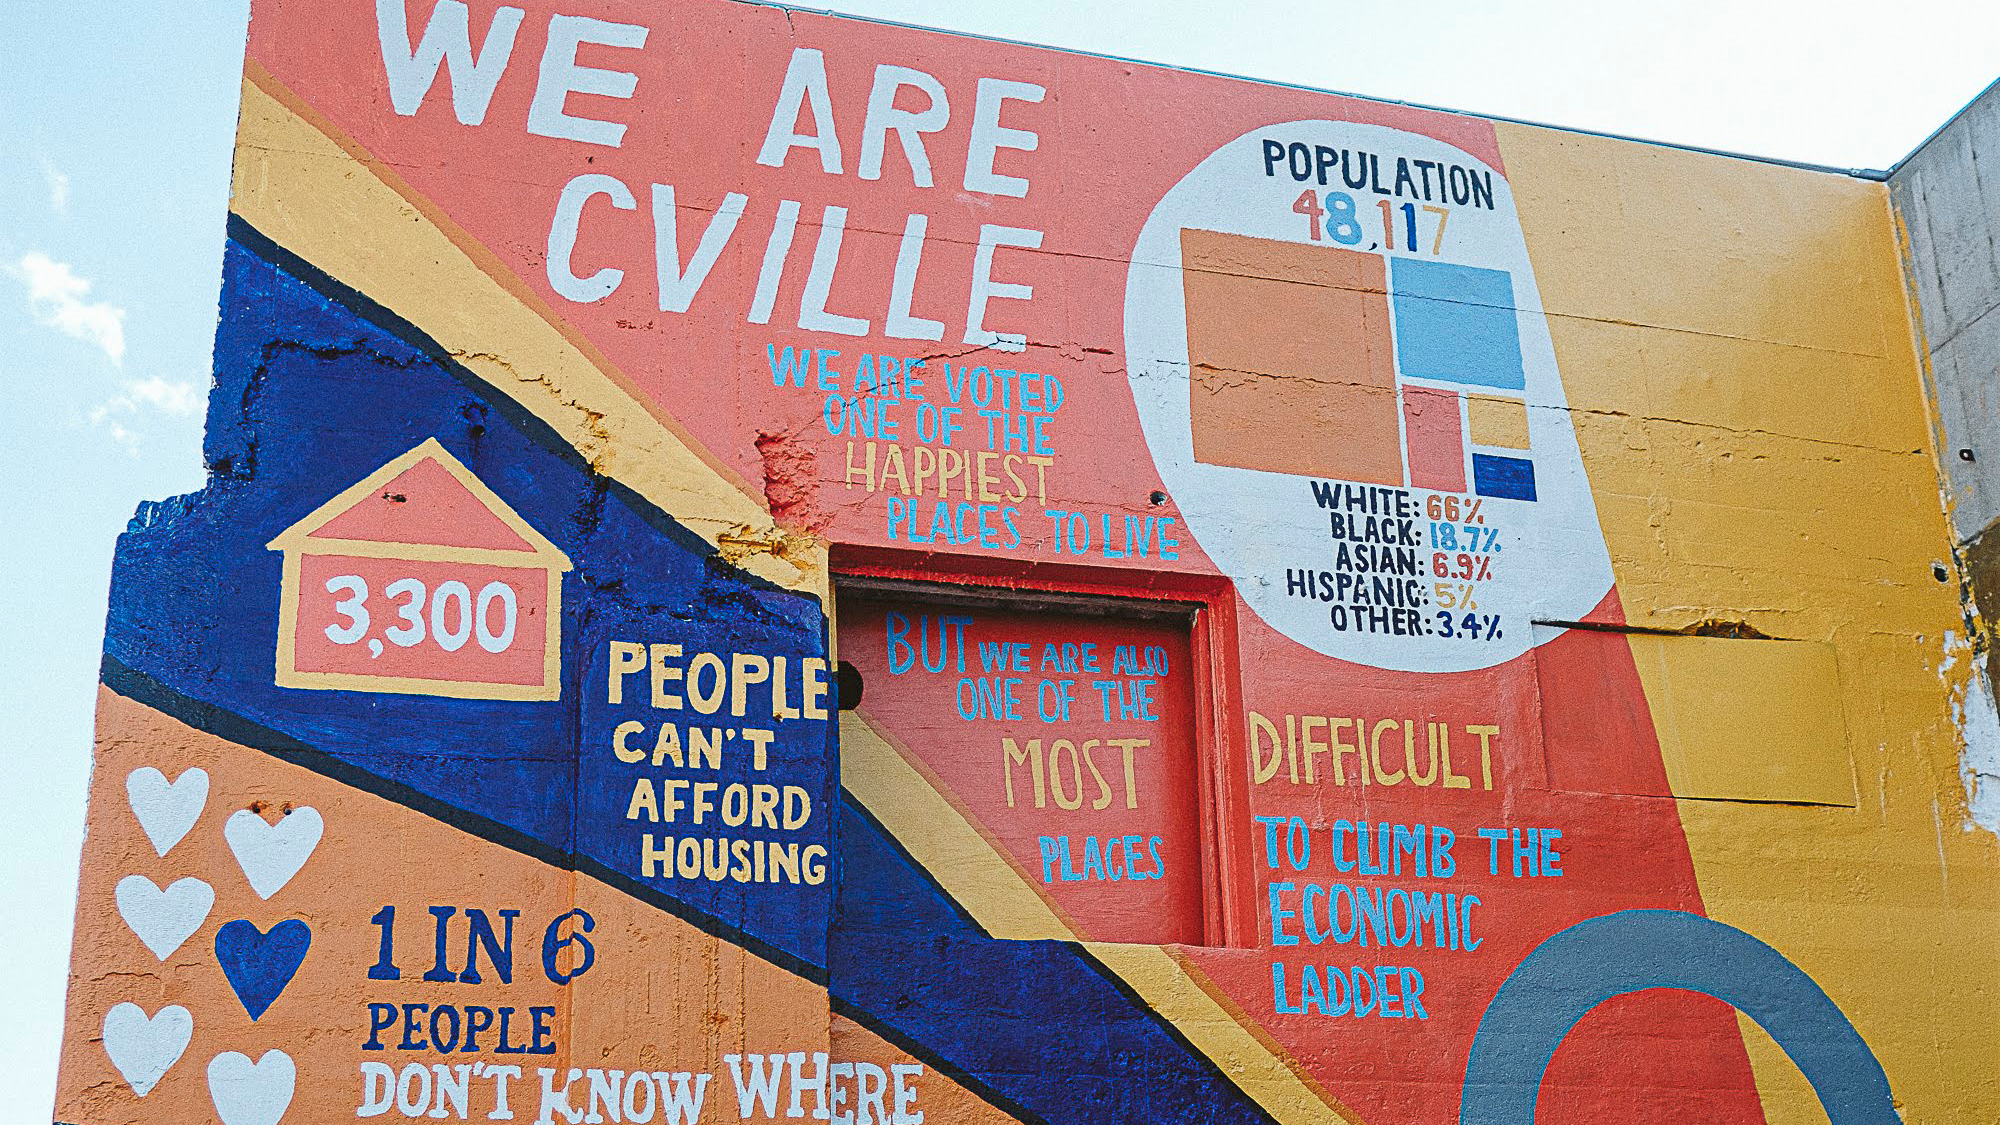 We are cville mural